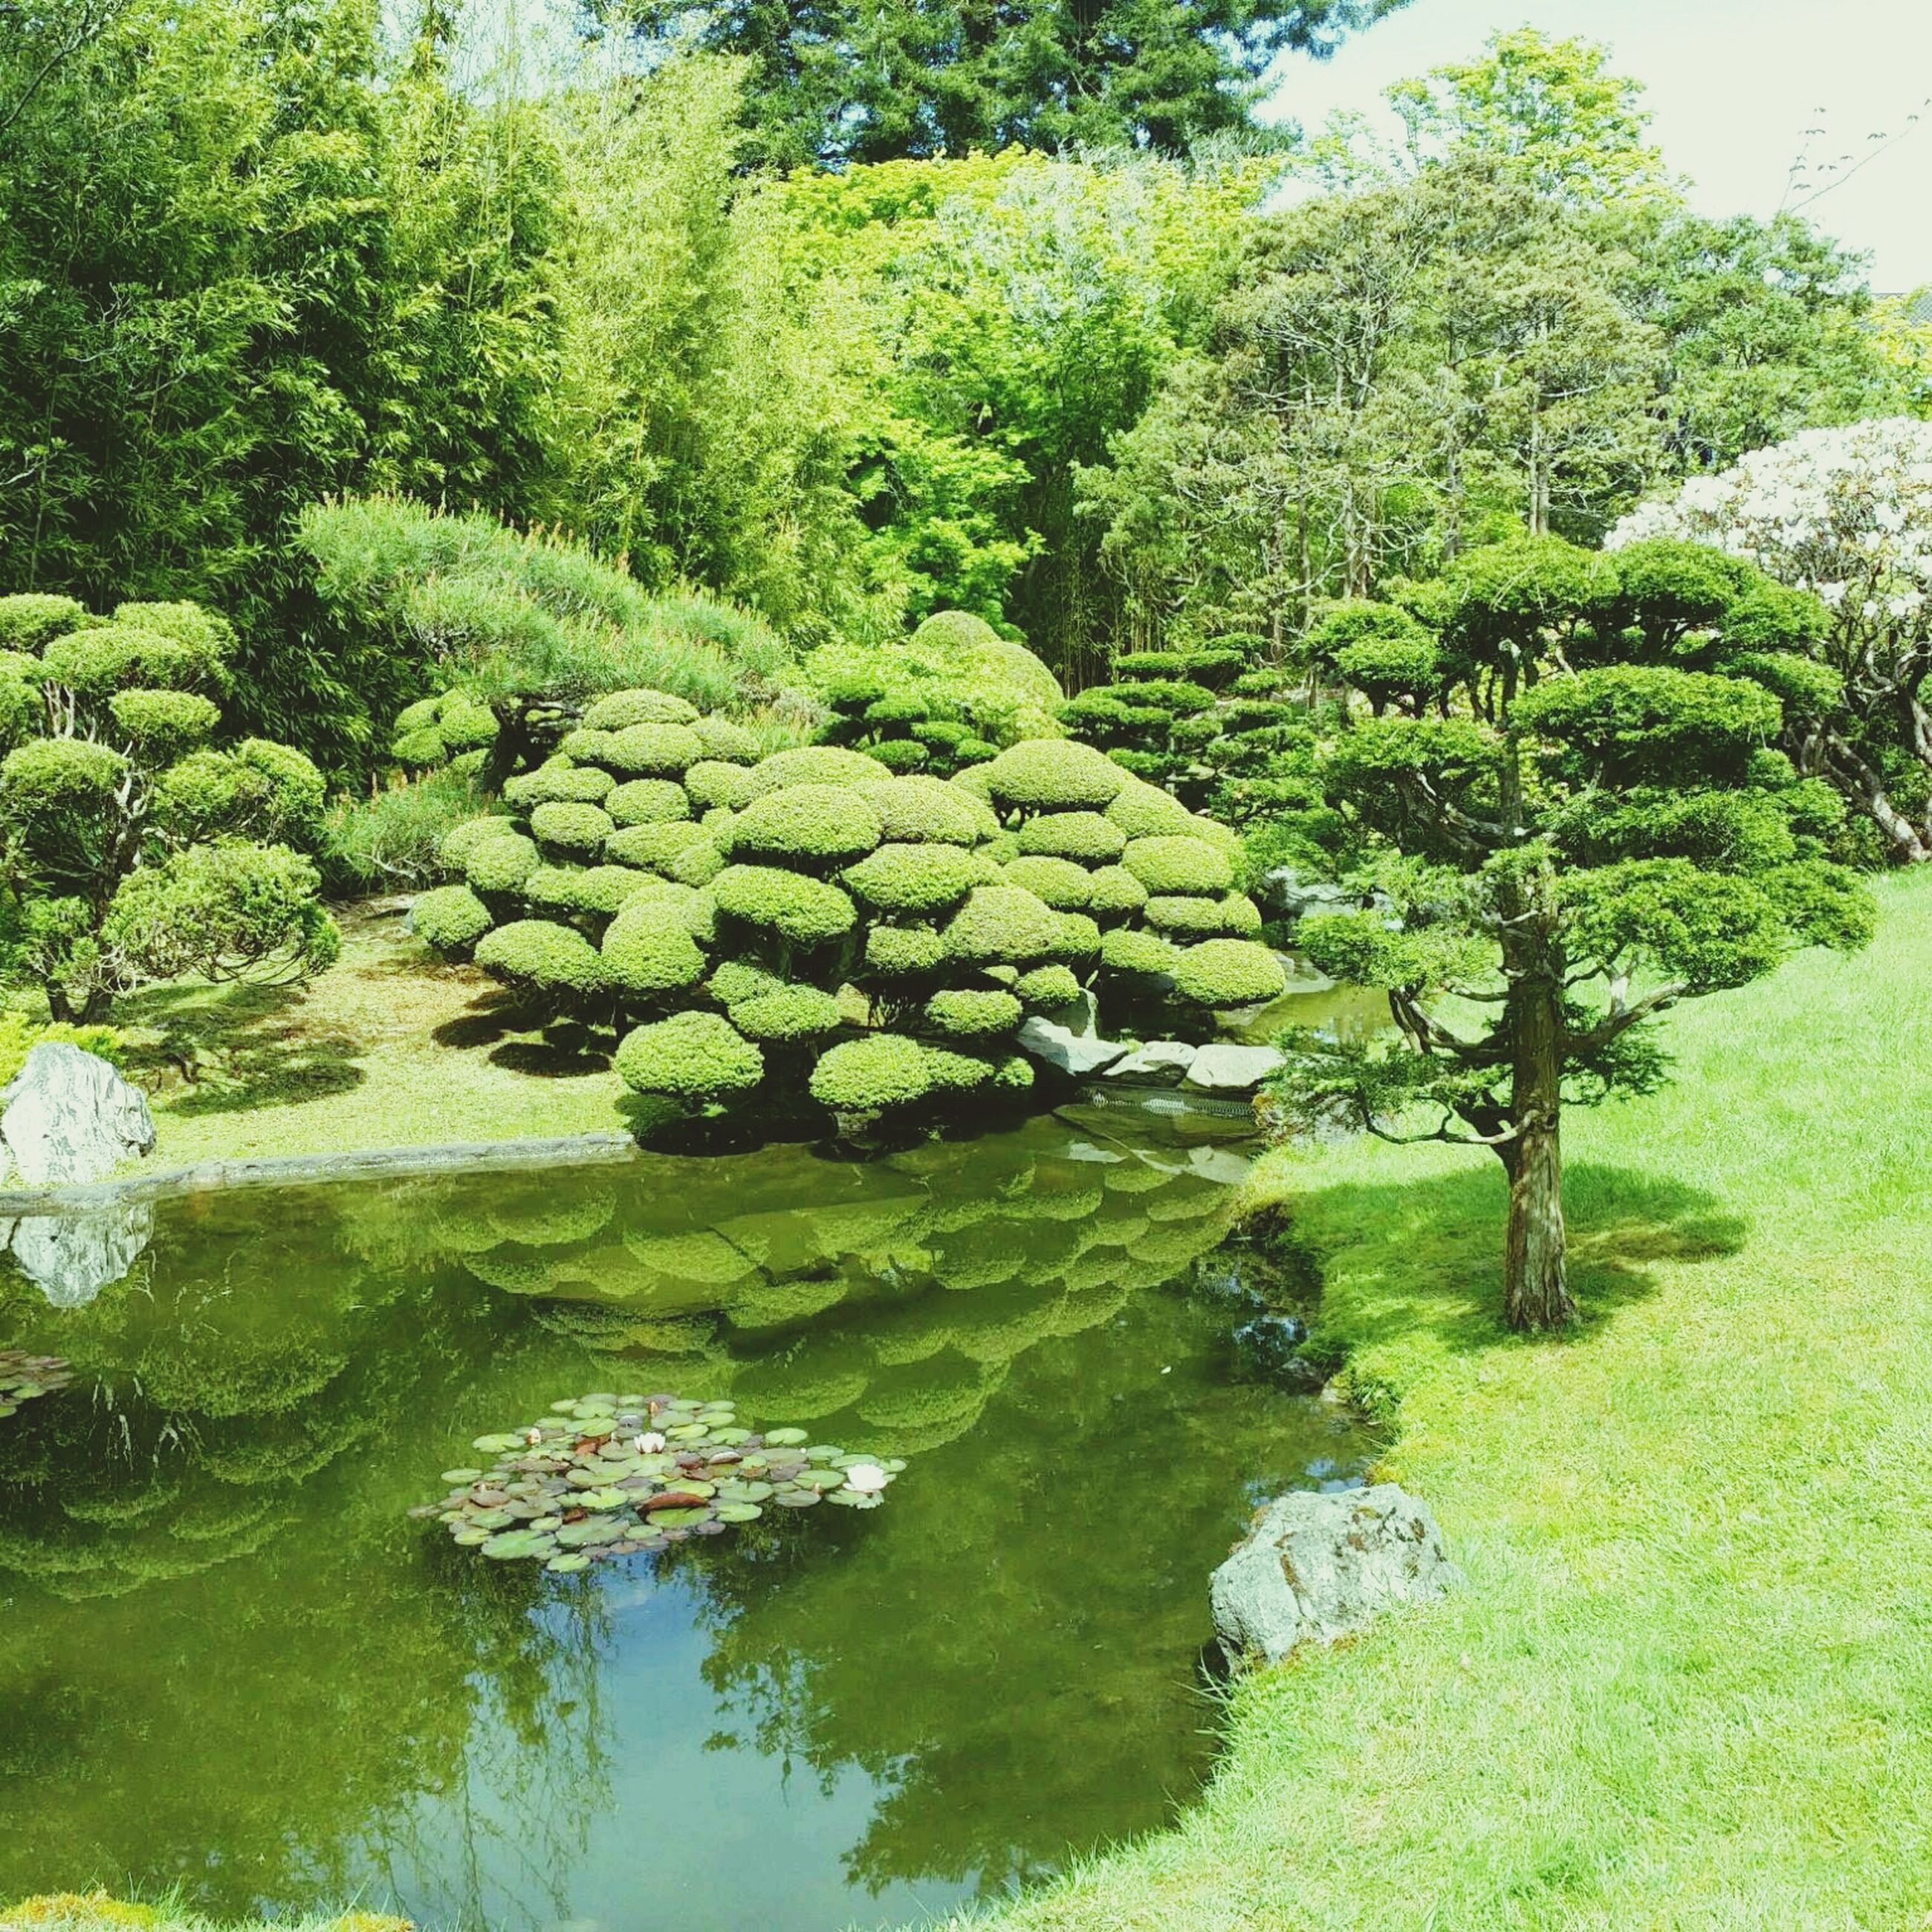 water, green color, tree, tranquility, growth, nature, tranquil scene, beauty in nature, grass, scenics, plant, green, day, pond, idyllic, rock - object, reflection, outdoors, lake, no people